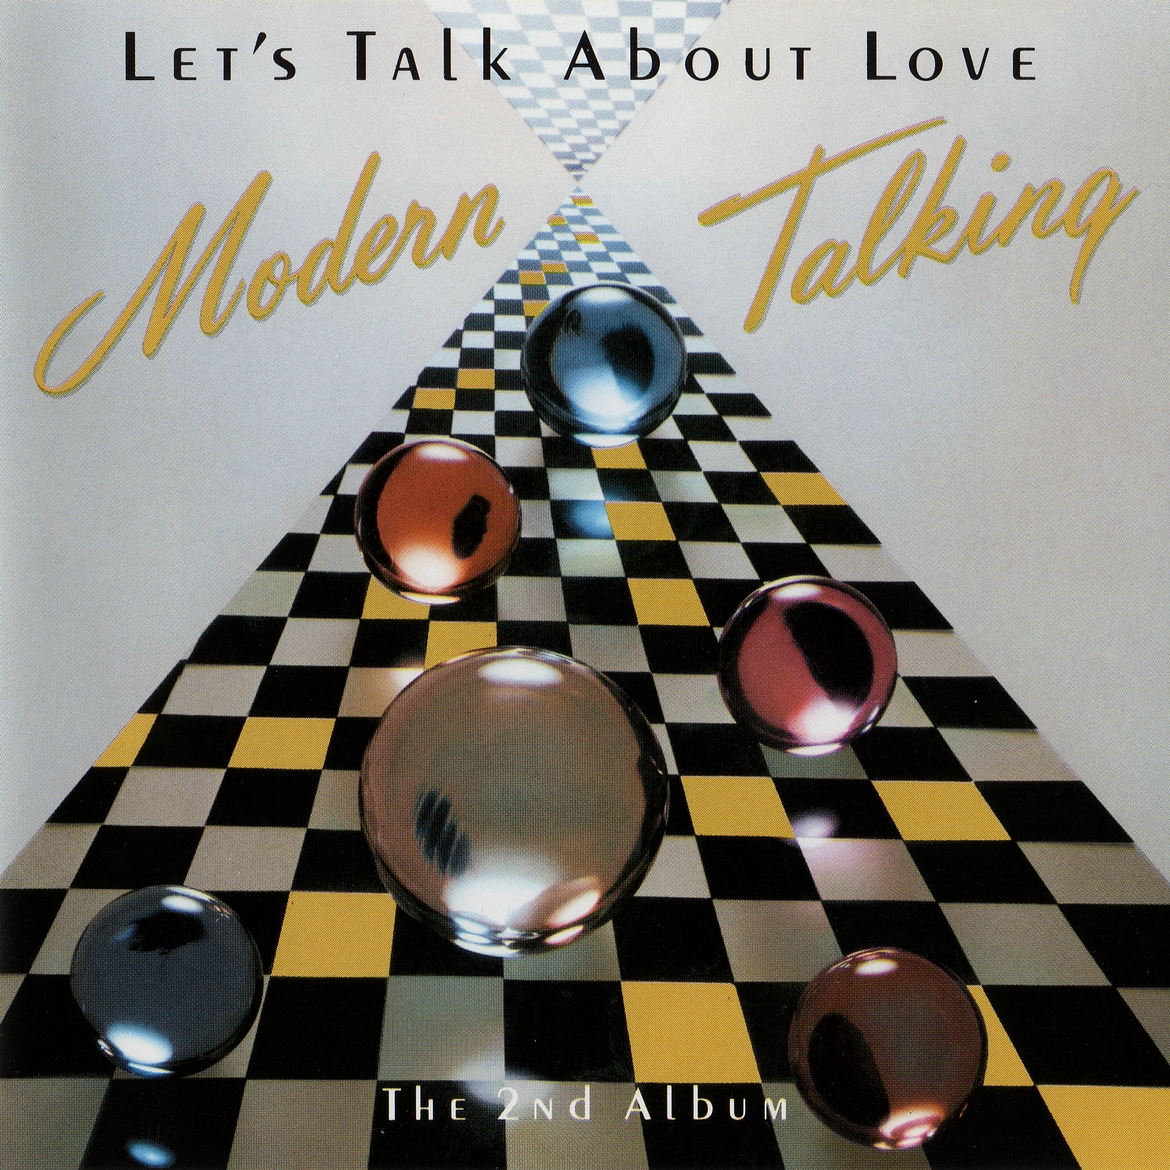 Let Me Love You Mp3 Song Download: Modern Talking Let Talk About Love Mp3 Download : Harnditfei